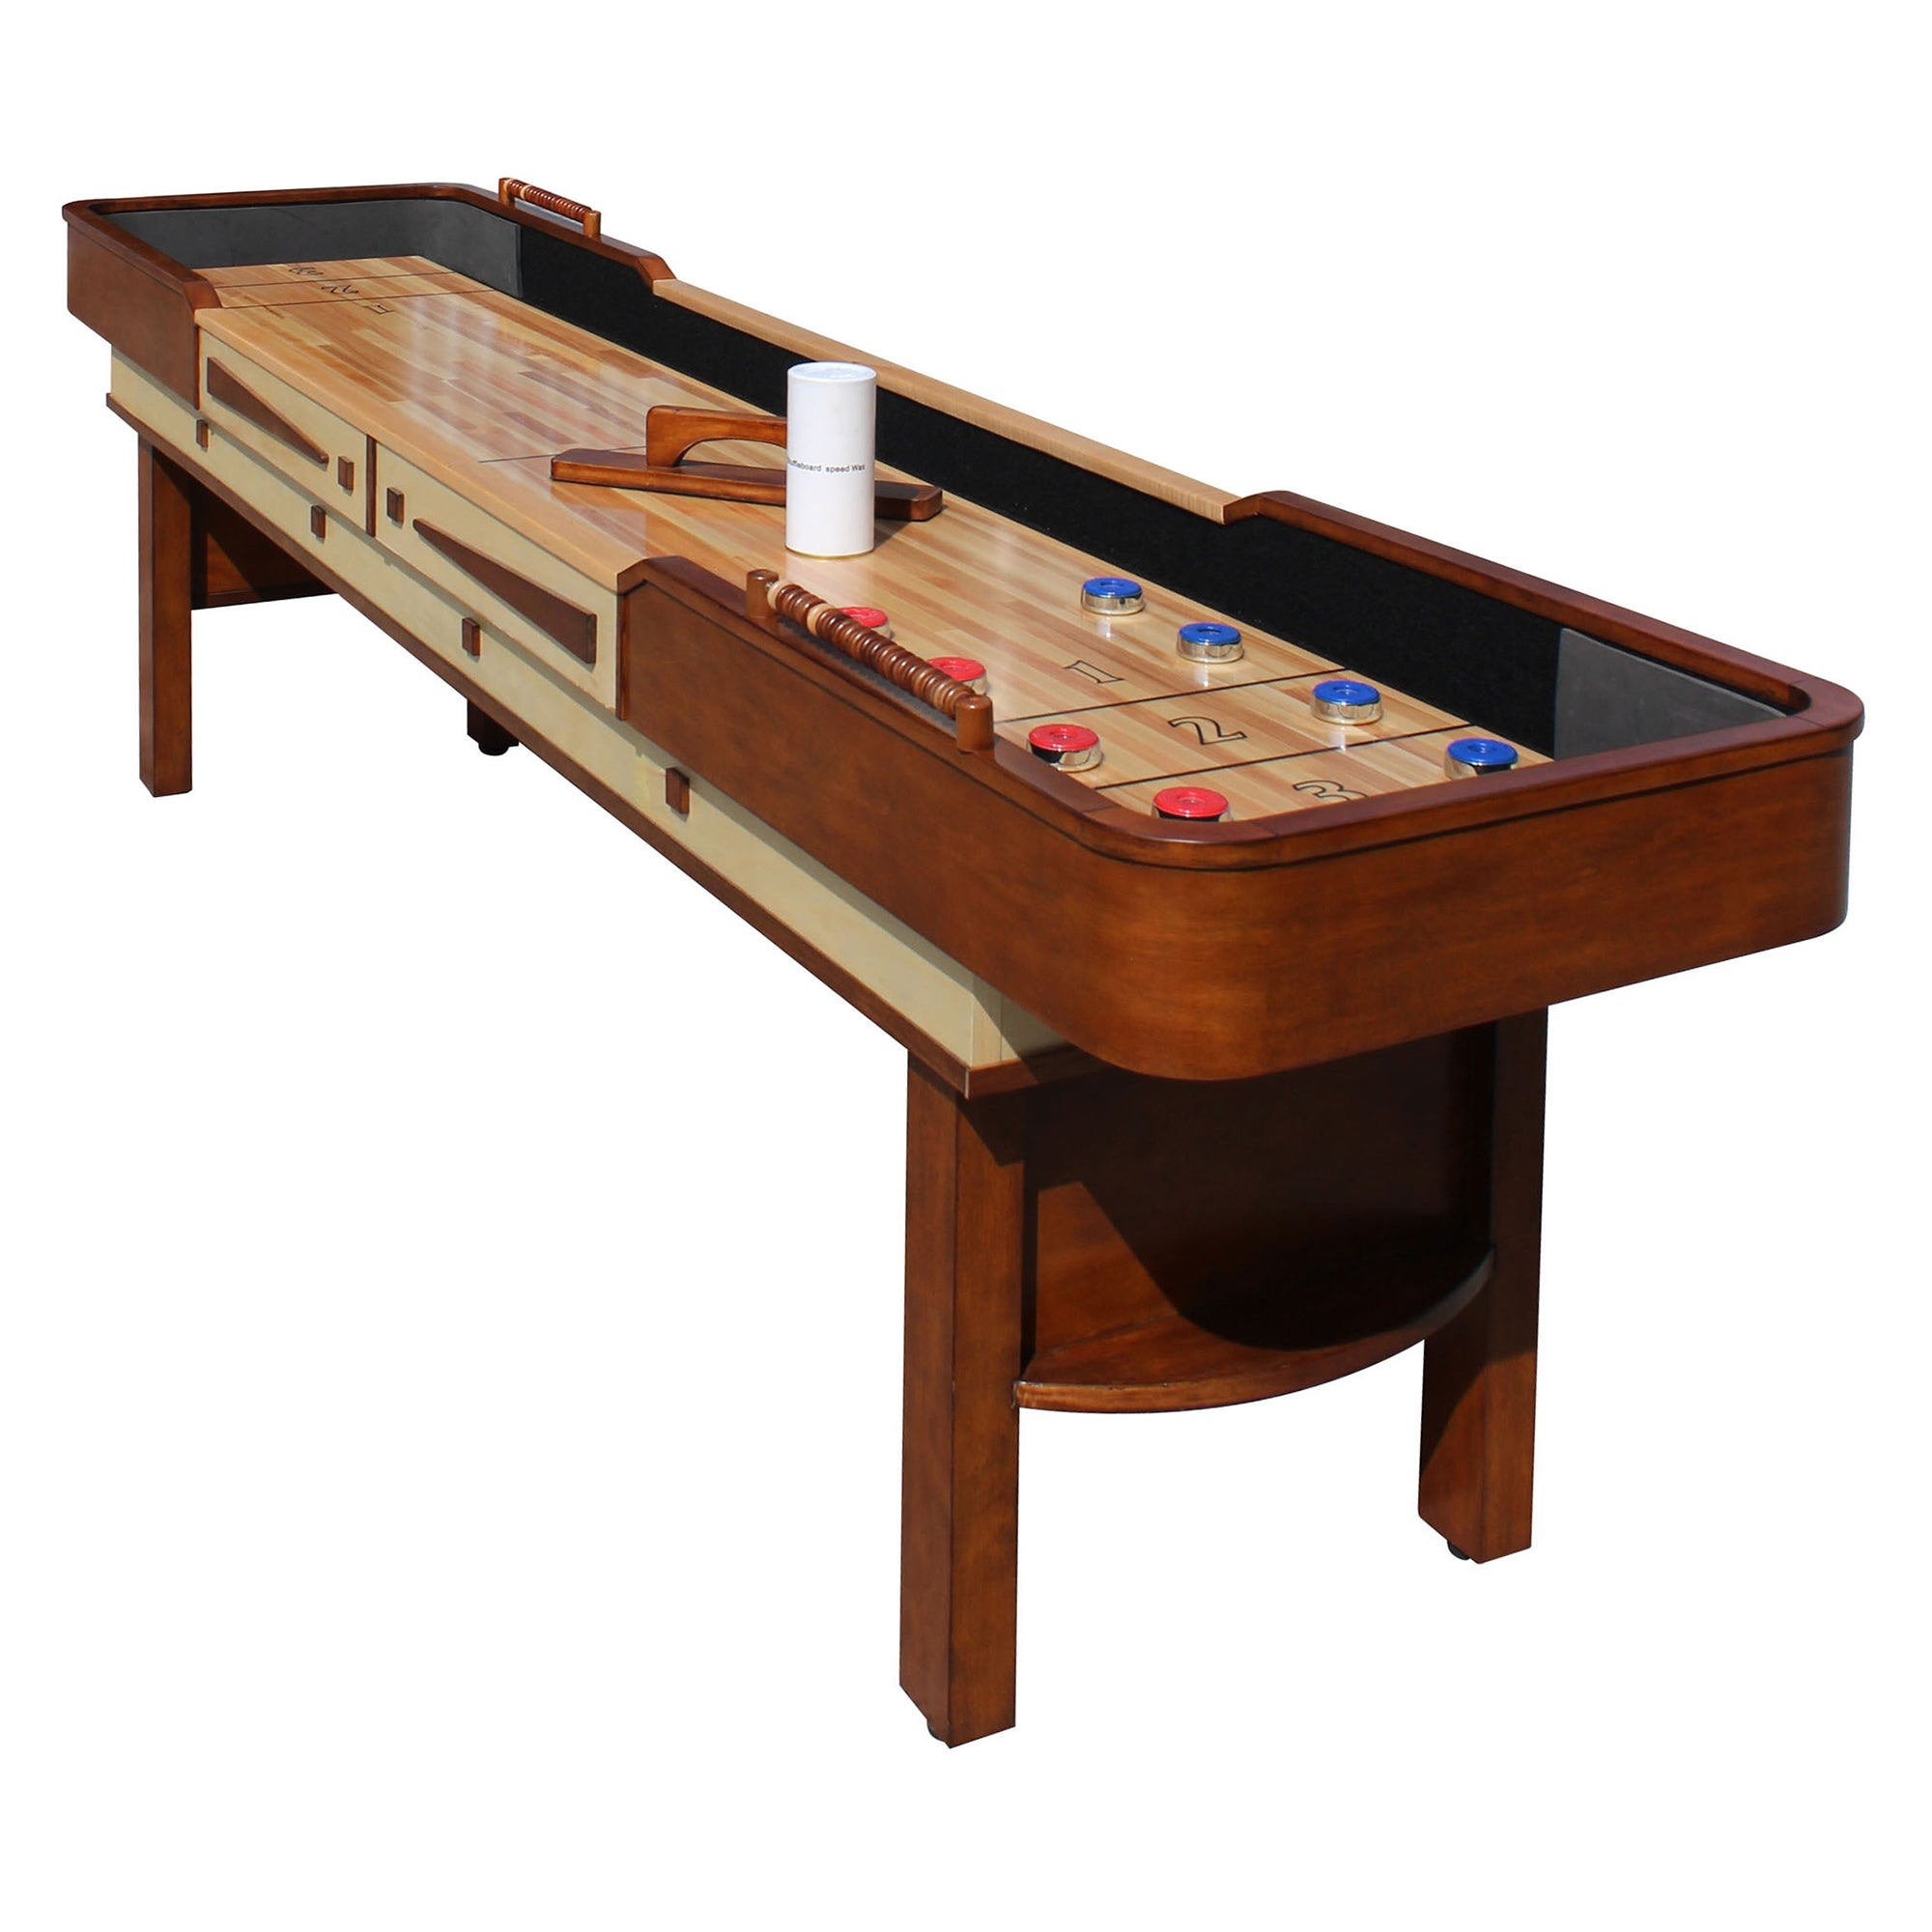 used ideas awesome for game tips rebound scoring home table sale indoor board fun shuffle shuffleboards shuffleboard champion